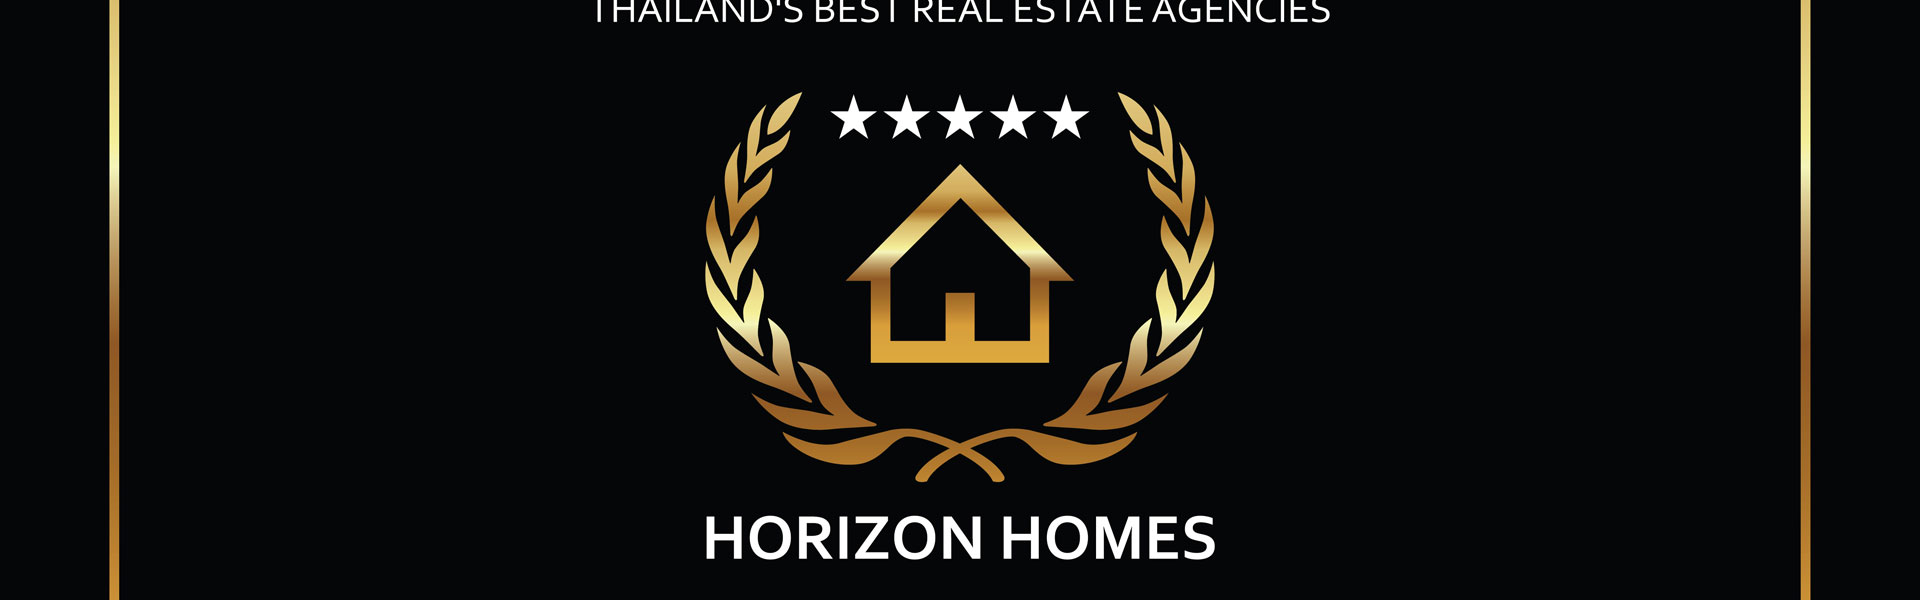 Horizon Homes awarded Best Real Estate Agency, Thailand, 2018